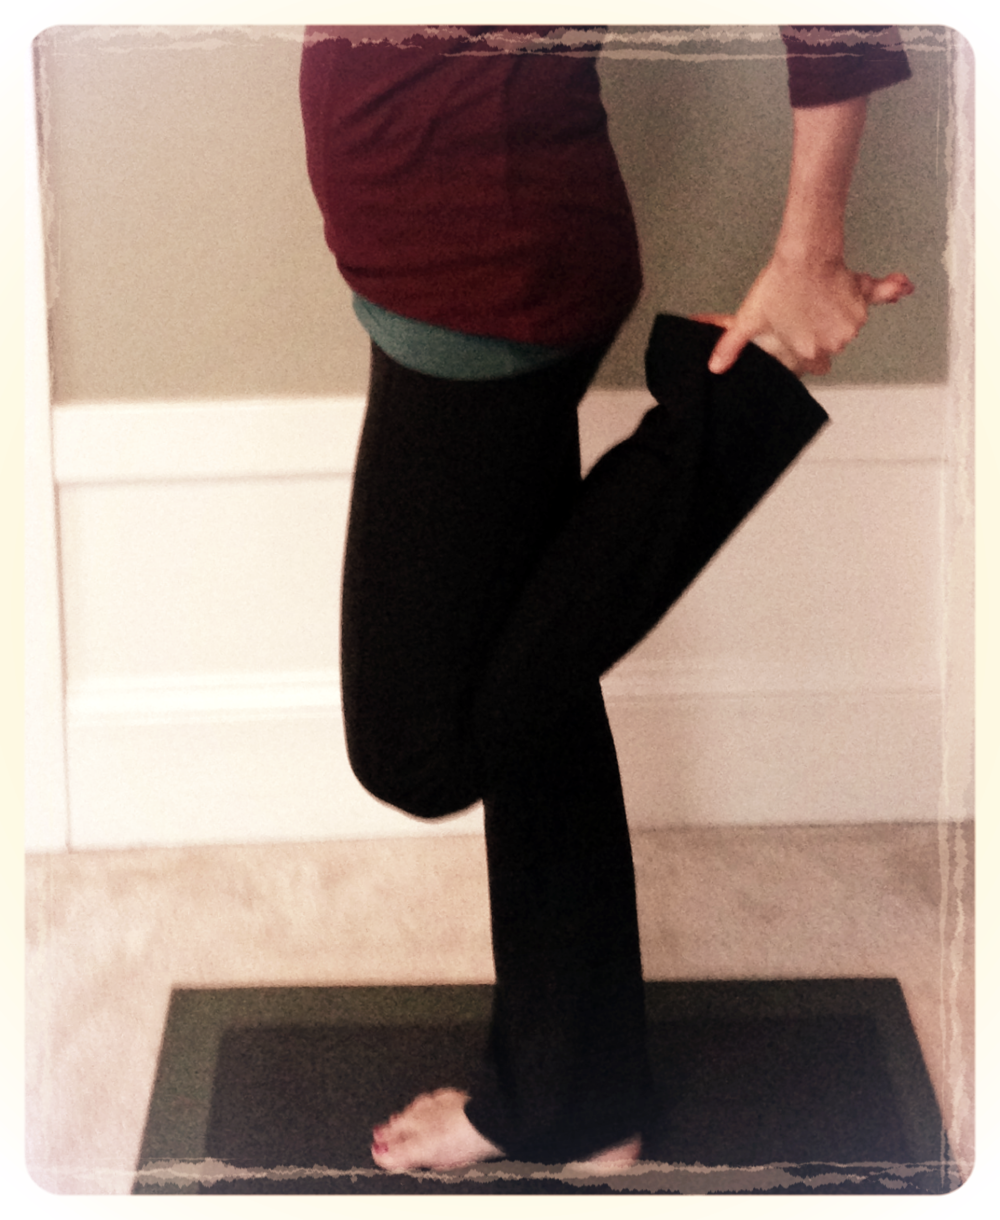 Quad stretches give a chance to work on balance as well as tightness.